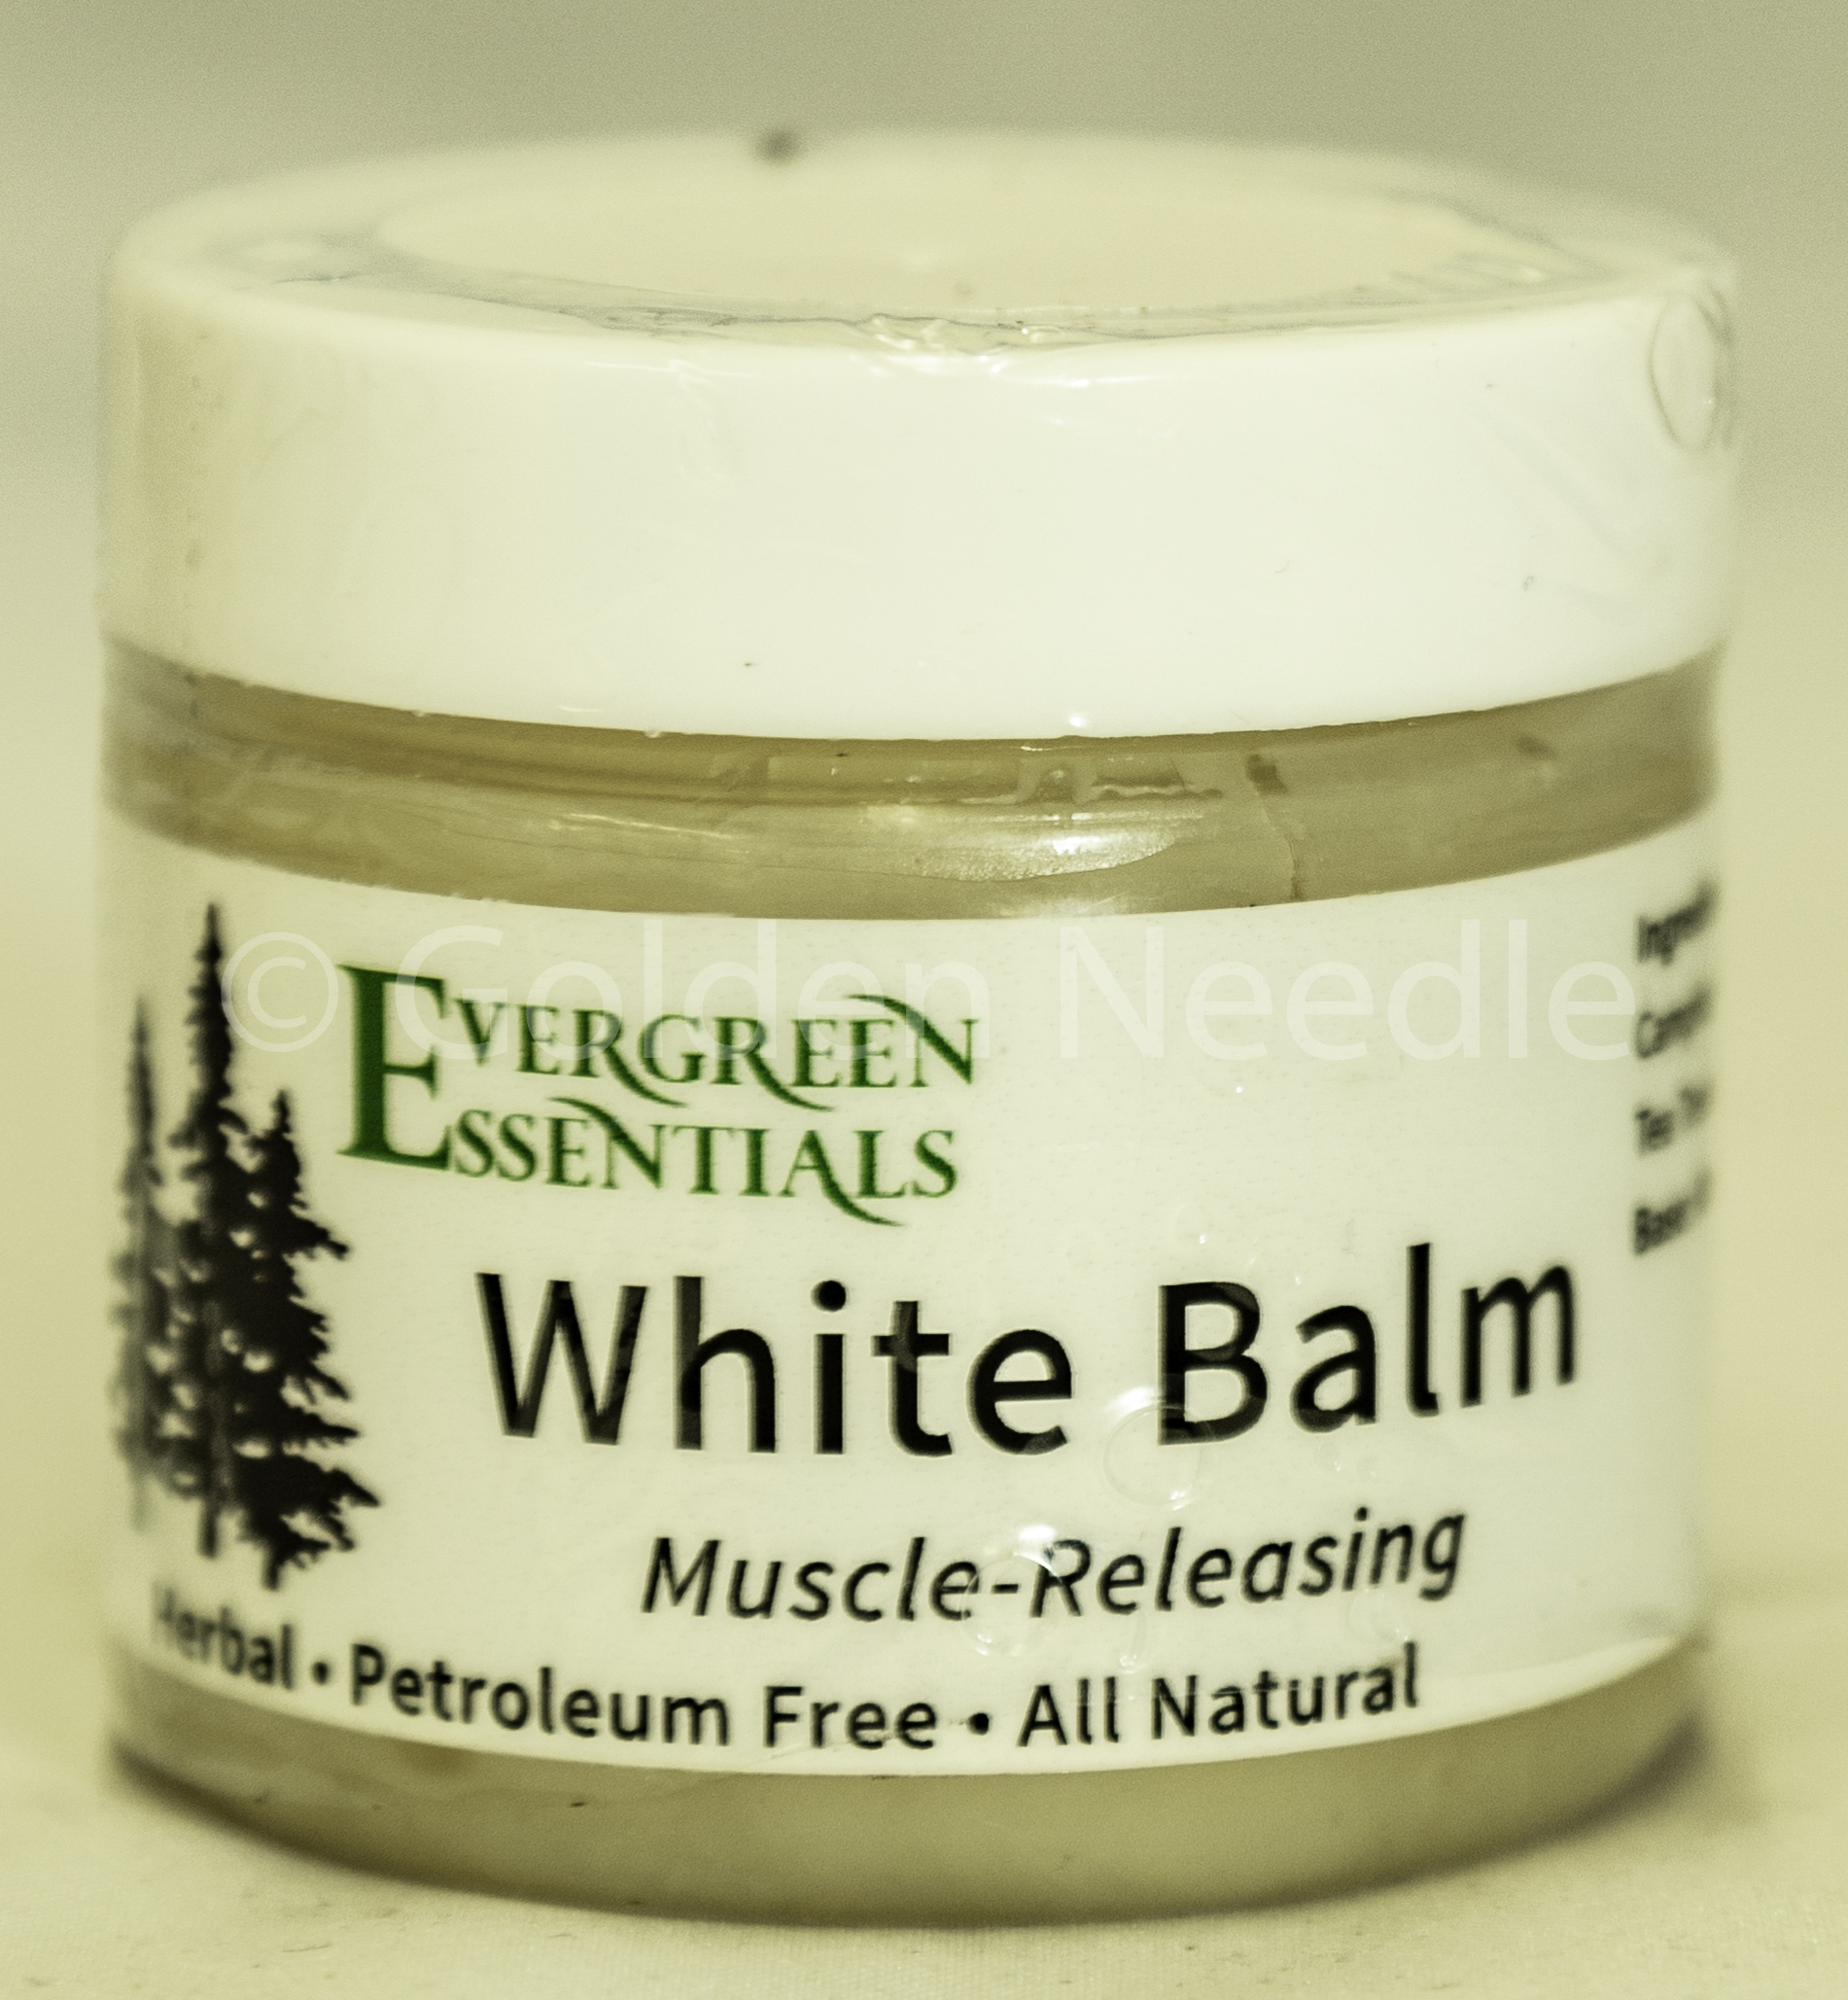 Evergreen Essentials White Balm